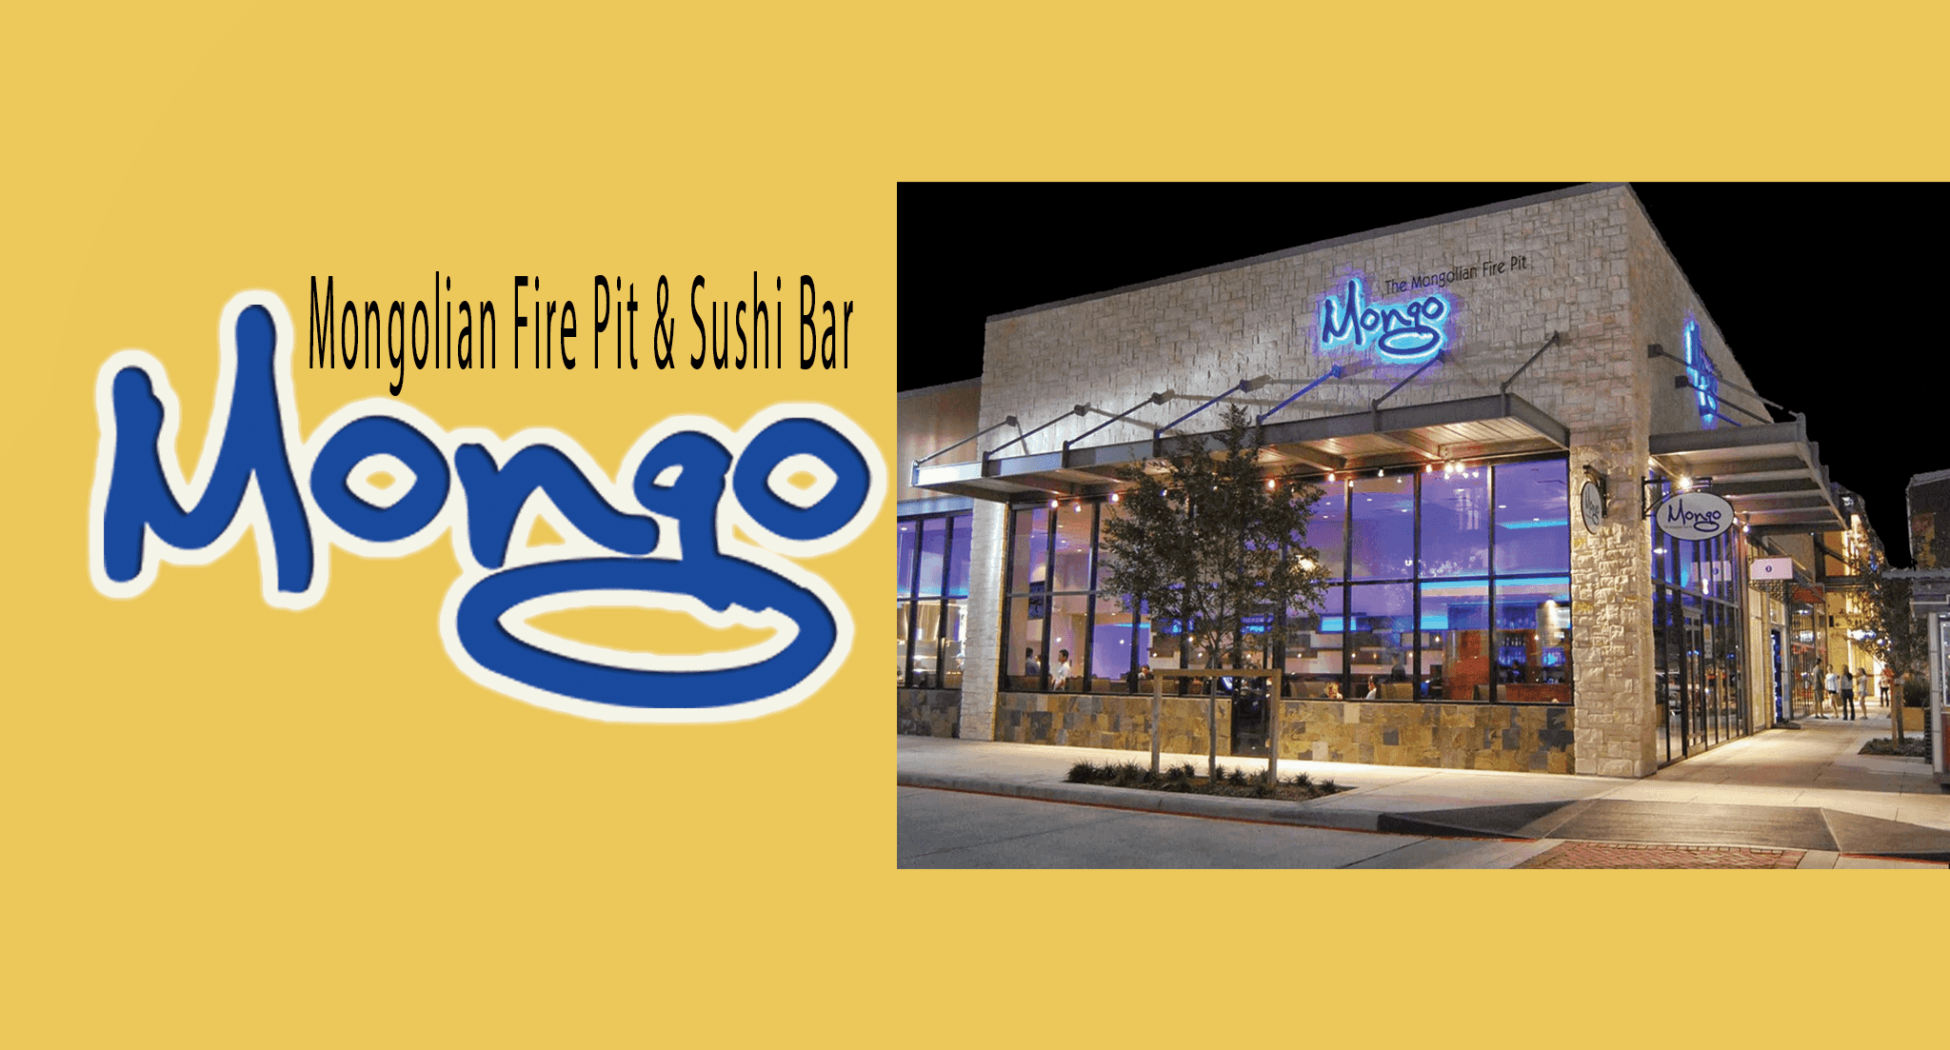 Mongo- Mongolian Fire Pit and Sushi Bar